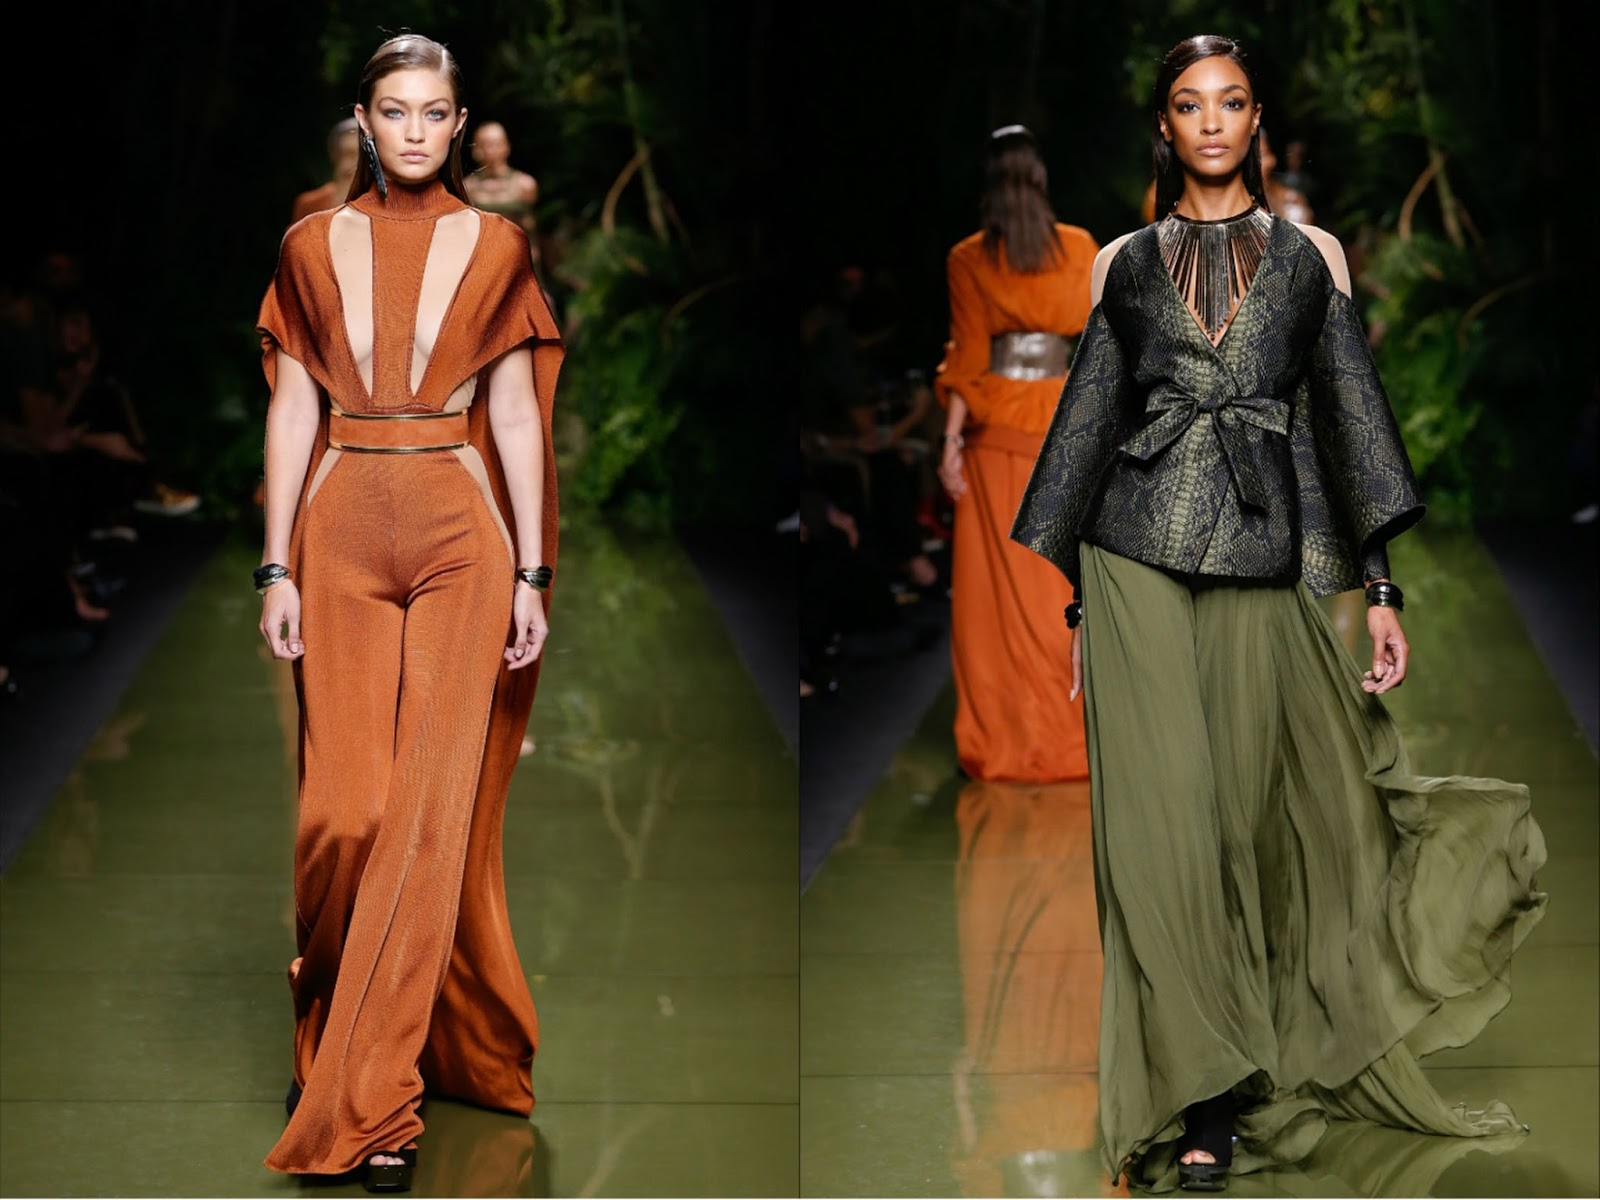 Eniwhere Fashion - Balmain - PFW